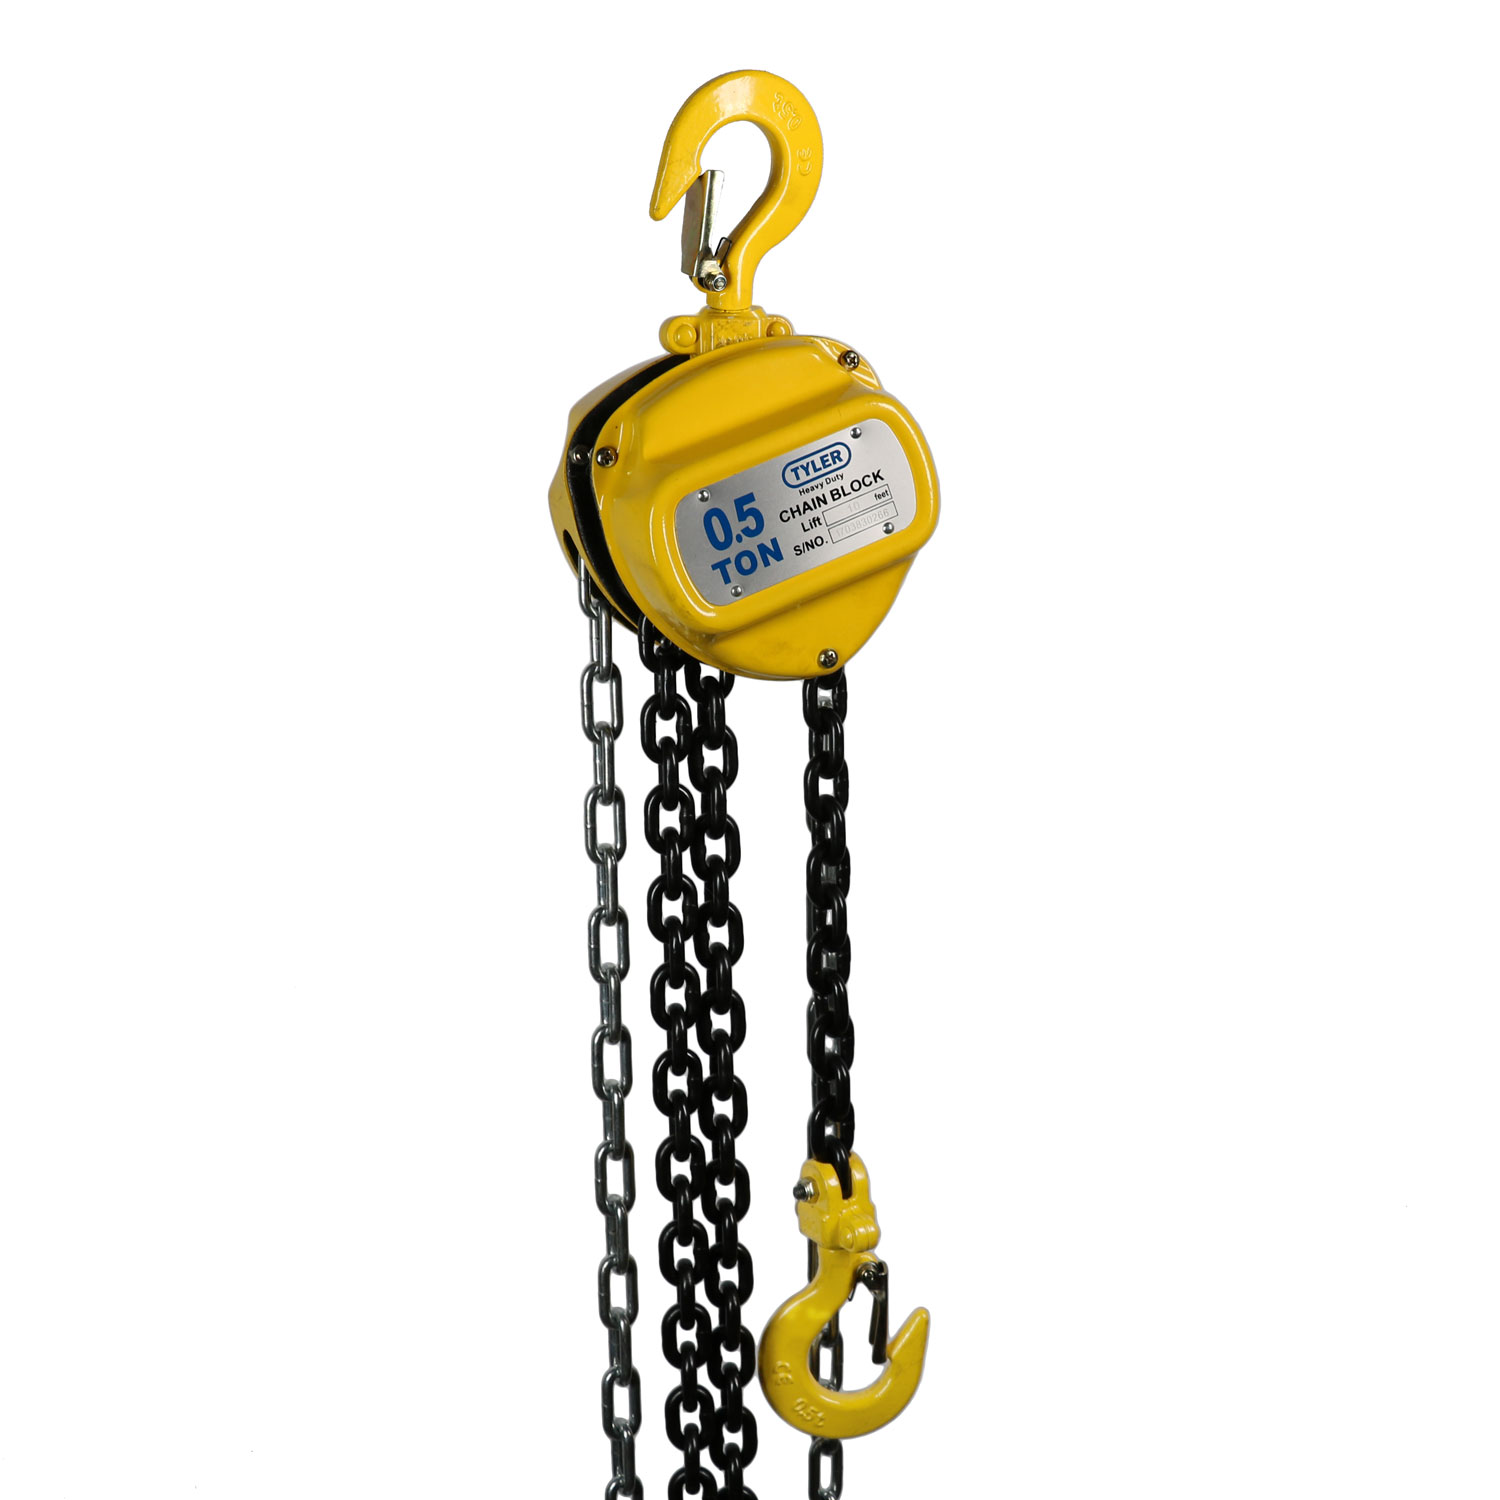 0.5 Ton X 10 Foot Lift, Tyler Tool Chain Hoist Image 1